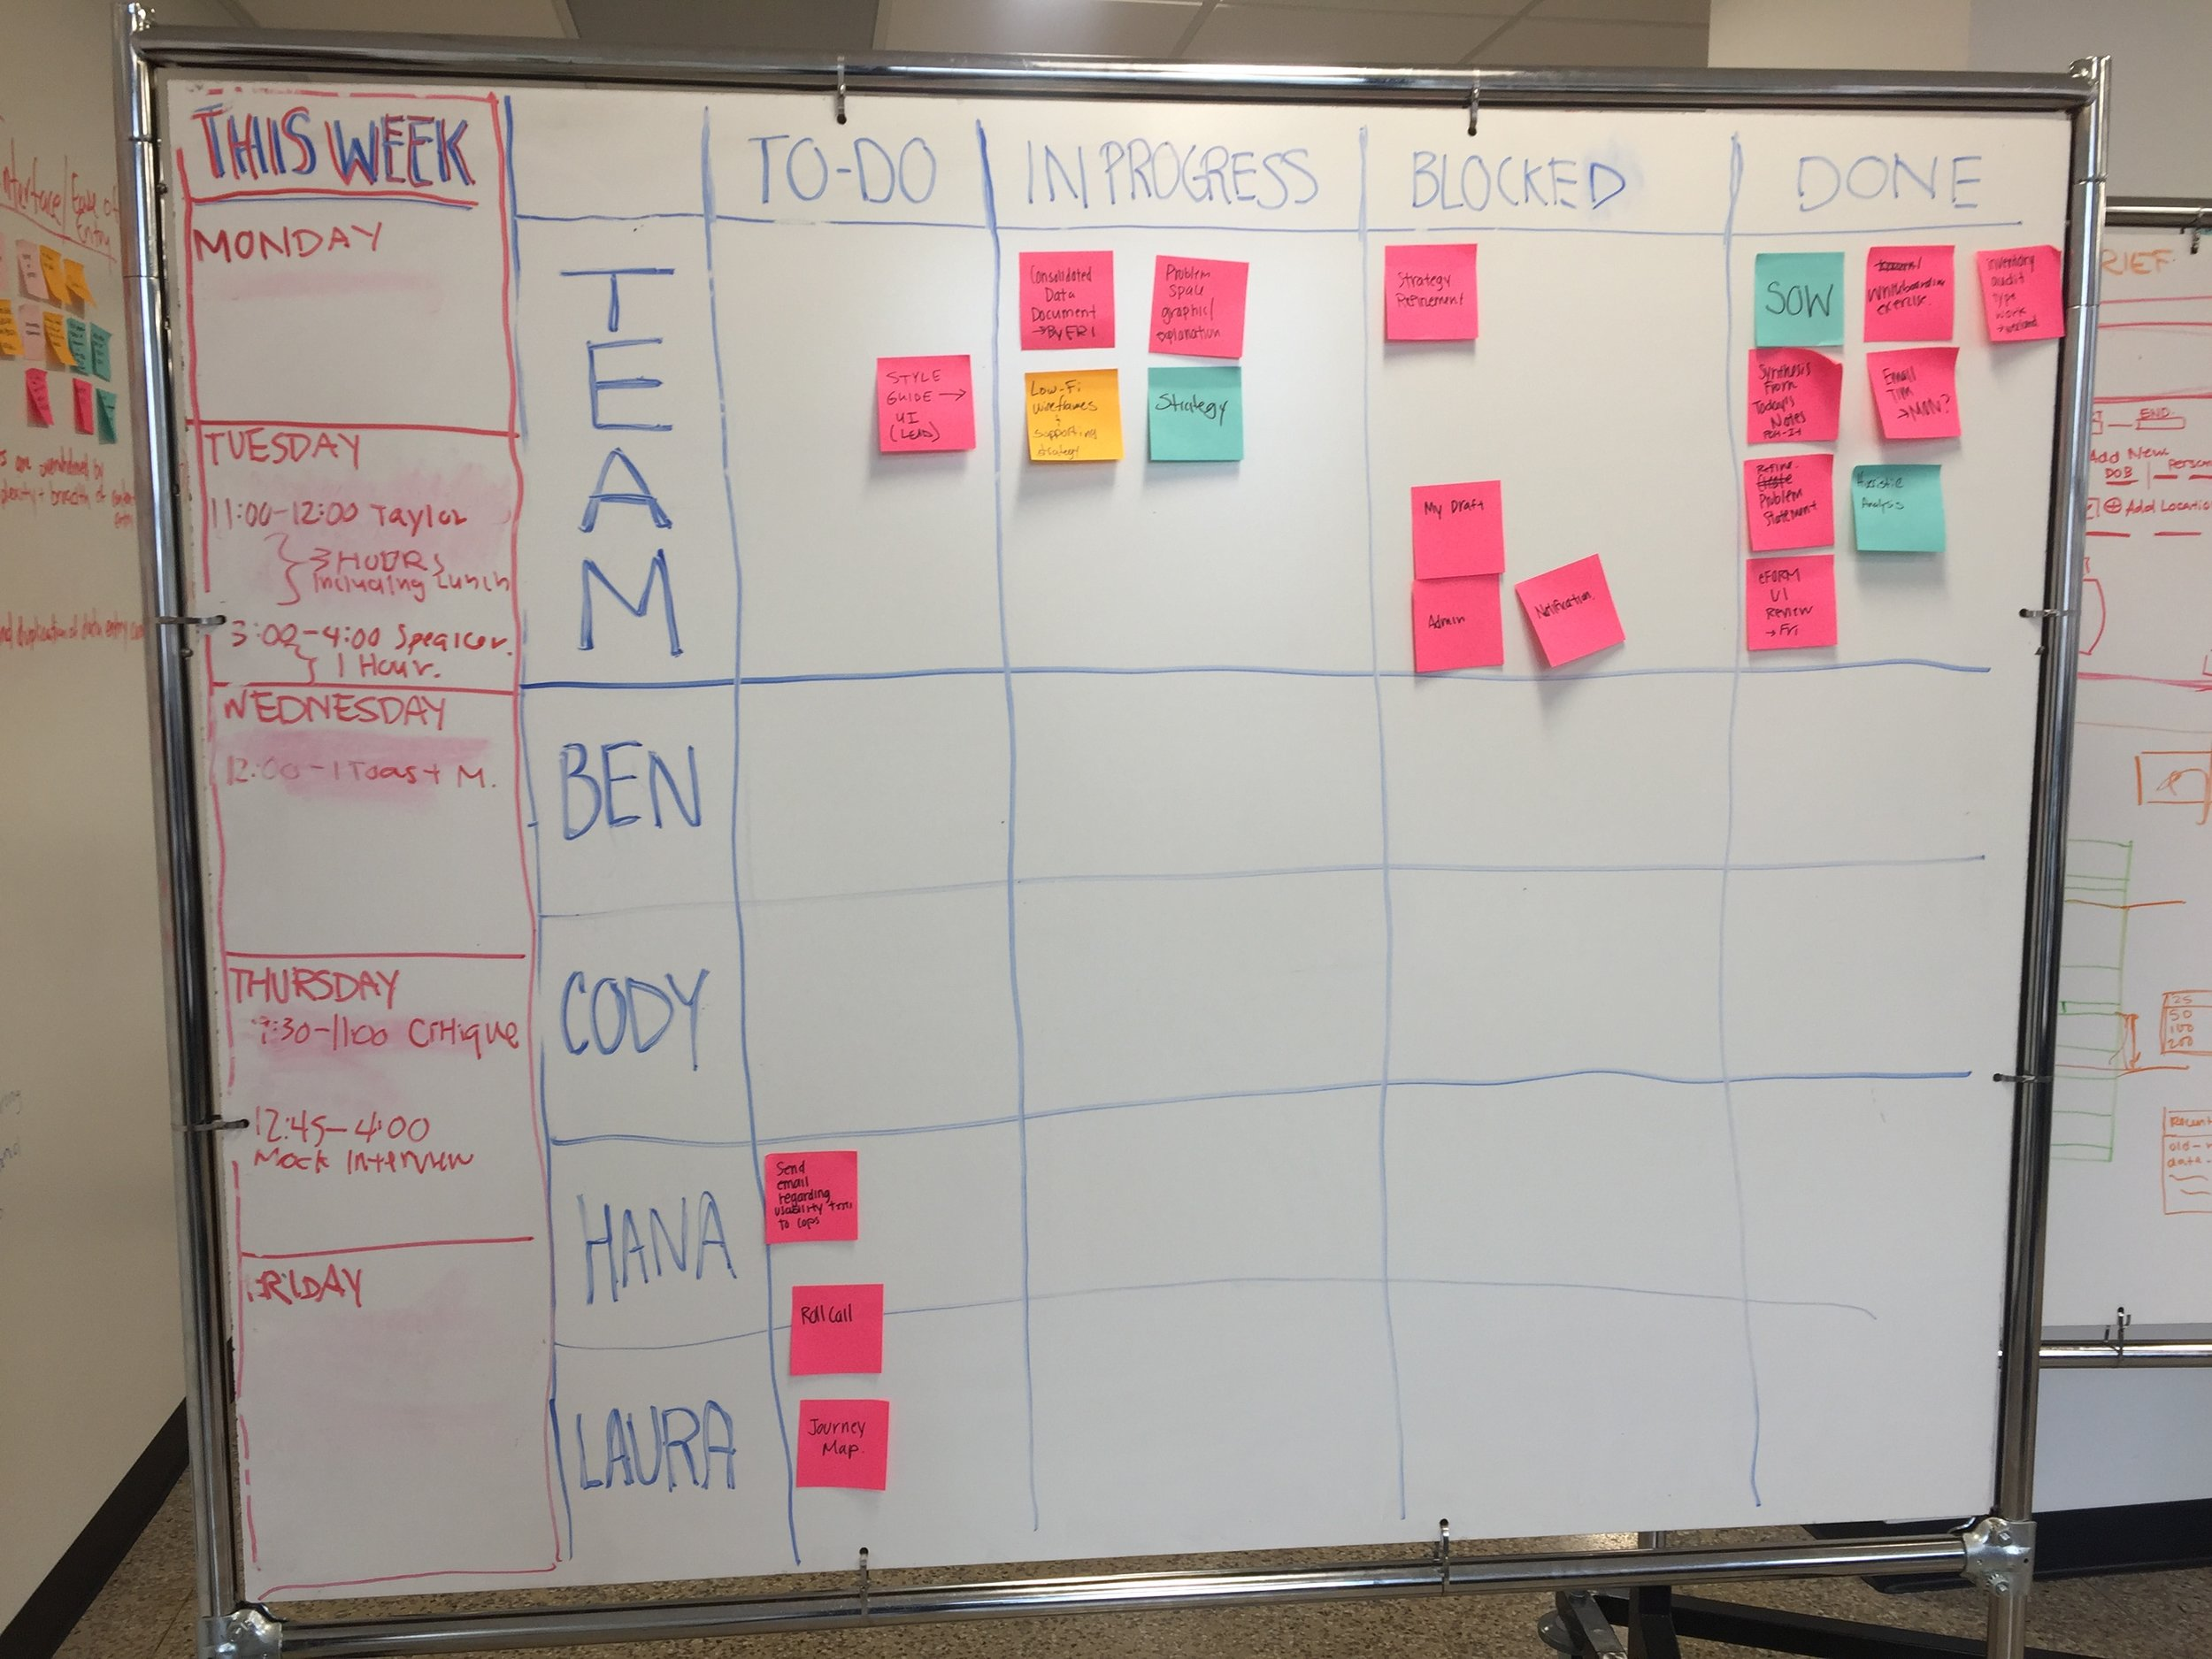 Team scrum board.